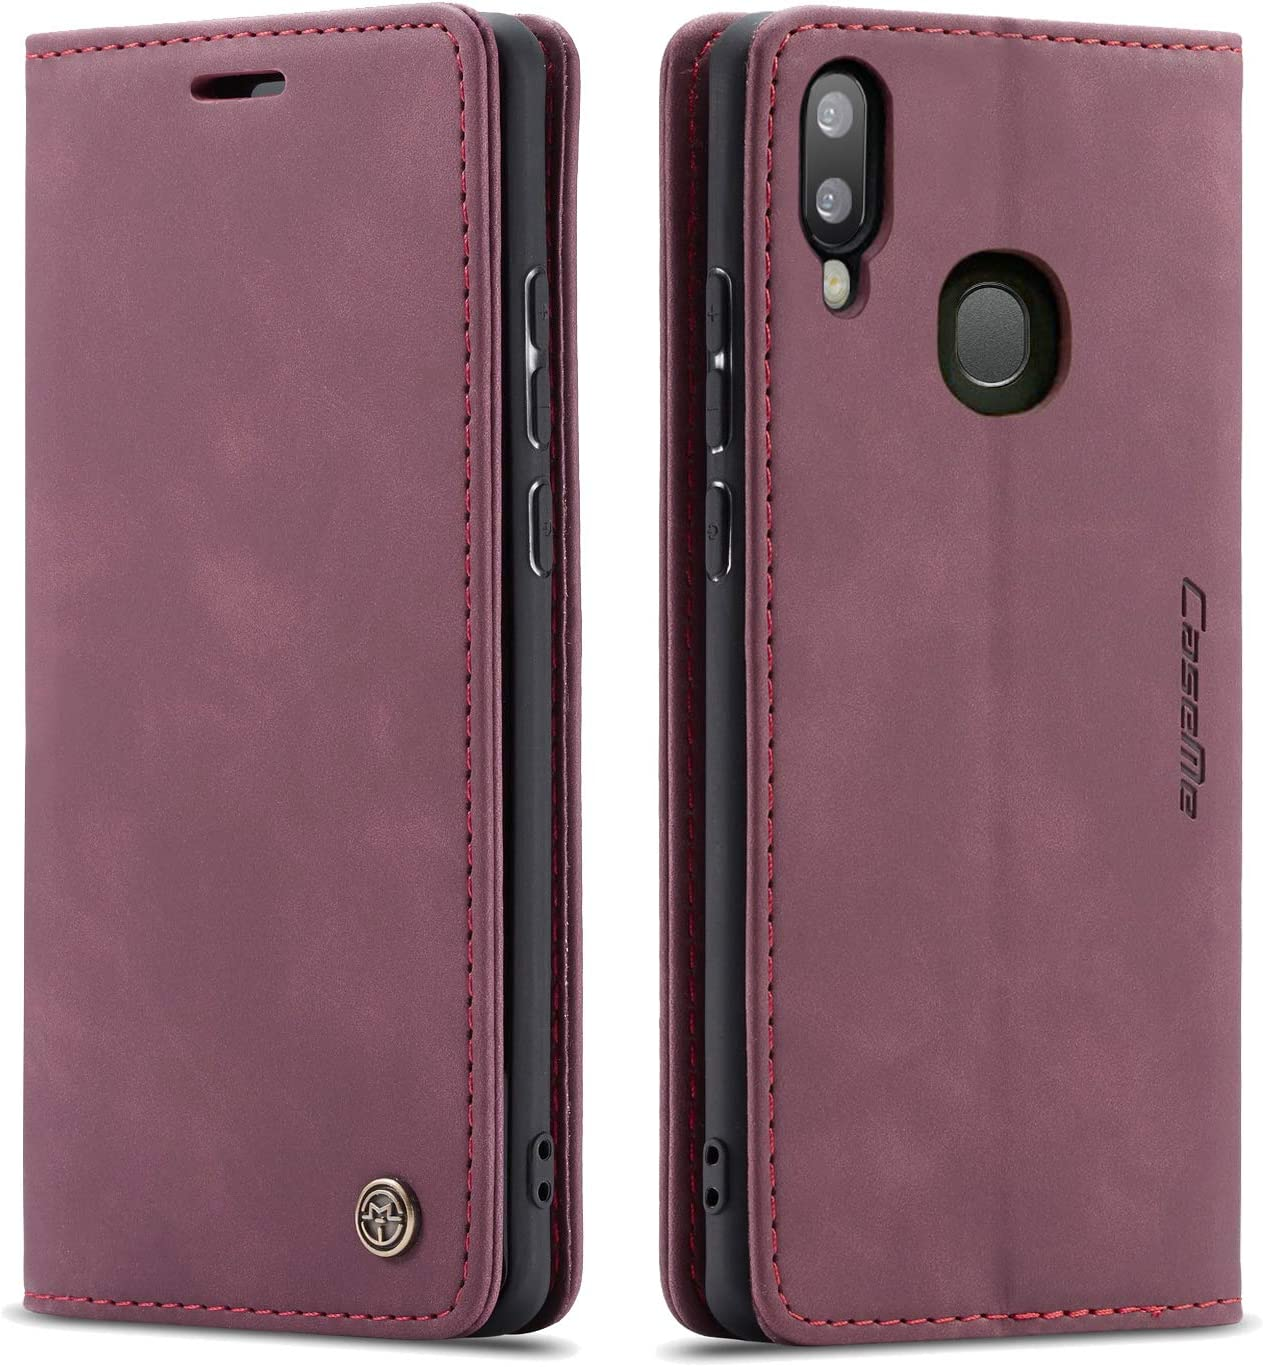 Galaxy A20 Case,Galaxy A30 Case,Bpowe Leather Wallet Case Classic Design with Card Slot and Magnetic Closure Flip Fold Case for Samsung Galaxy A20/Galaxy A30 (Wine red)